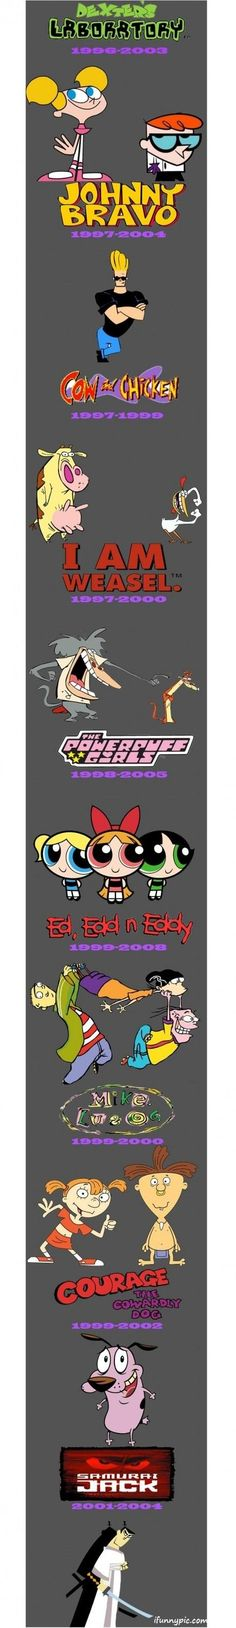 best shows of my childhood